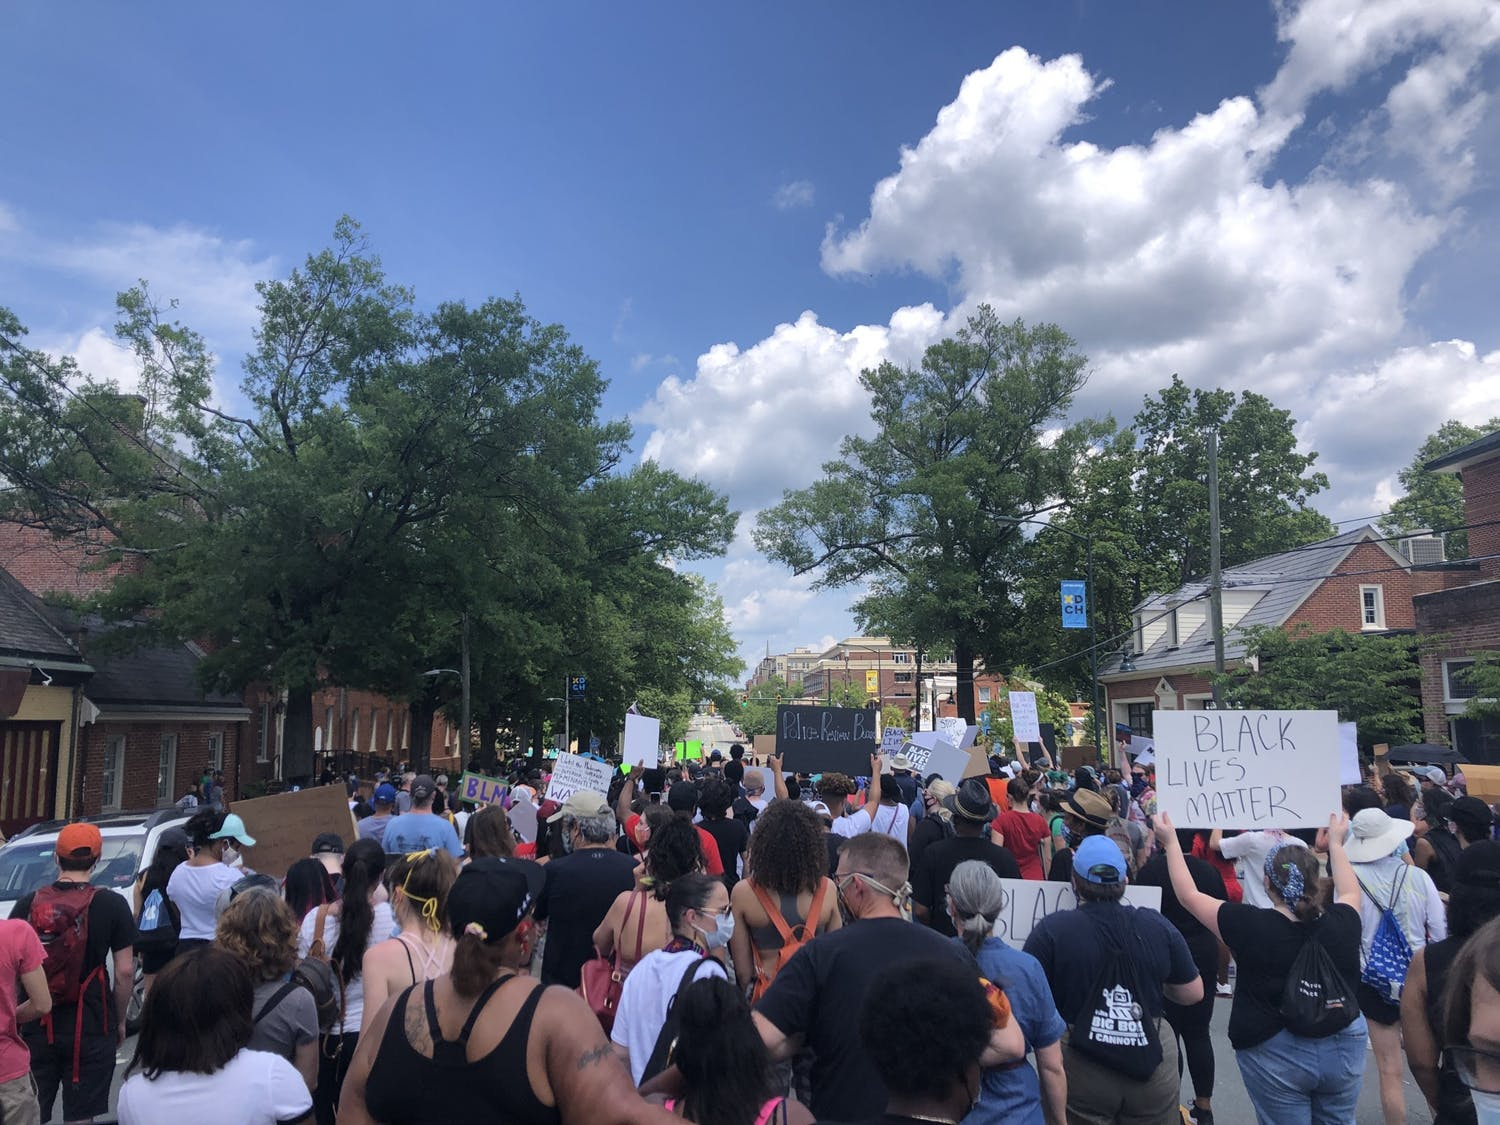 Protestors occupy West Franklin Street on Saturday, June 6, 2020 in continued rallys against police brutality held by the Chapel Hill-Carrboro NAACP Youth Council and Chapel Hill-Carrboro Youth Advocates.